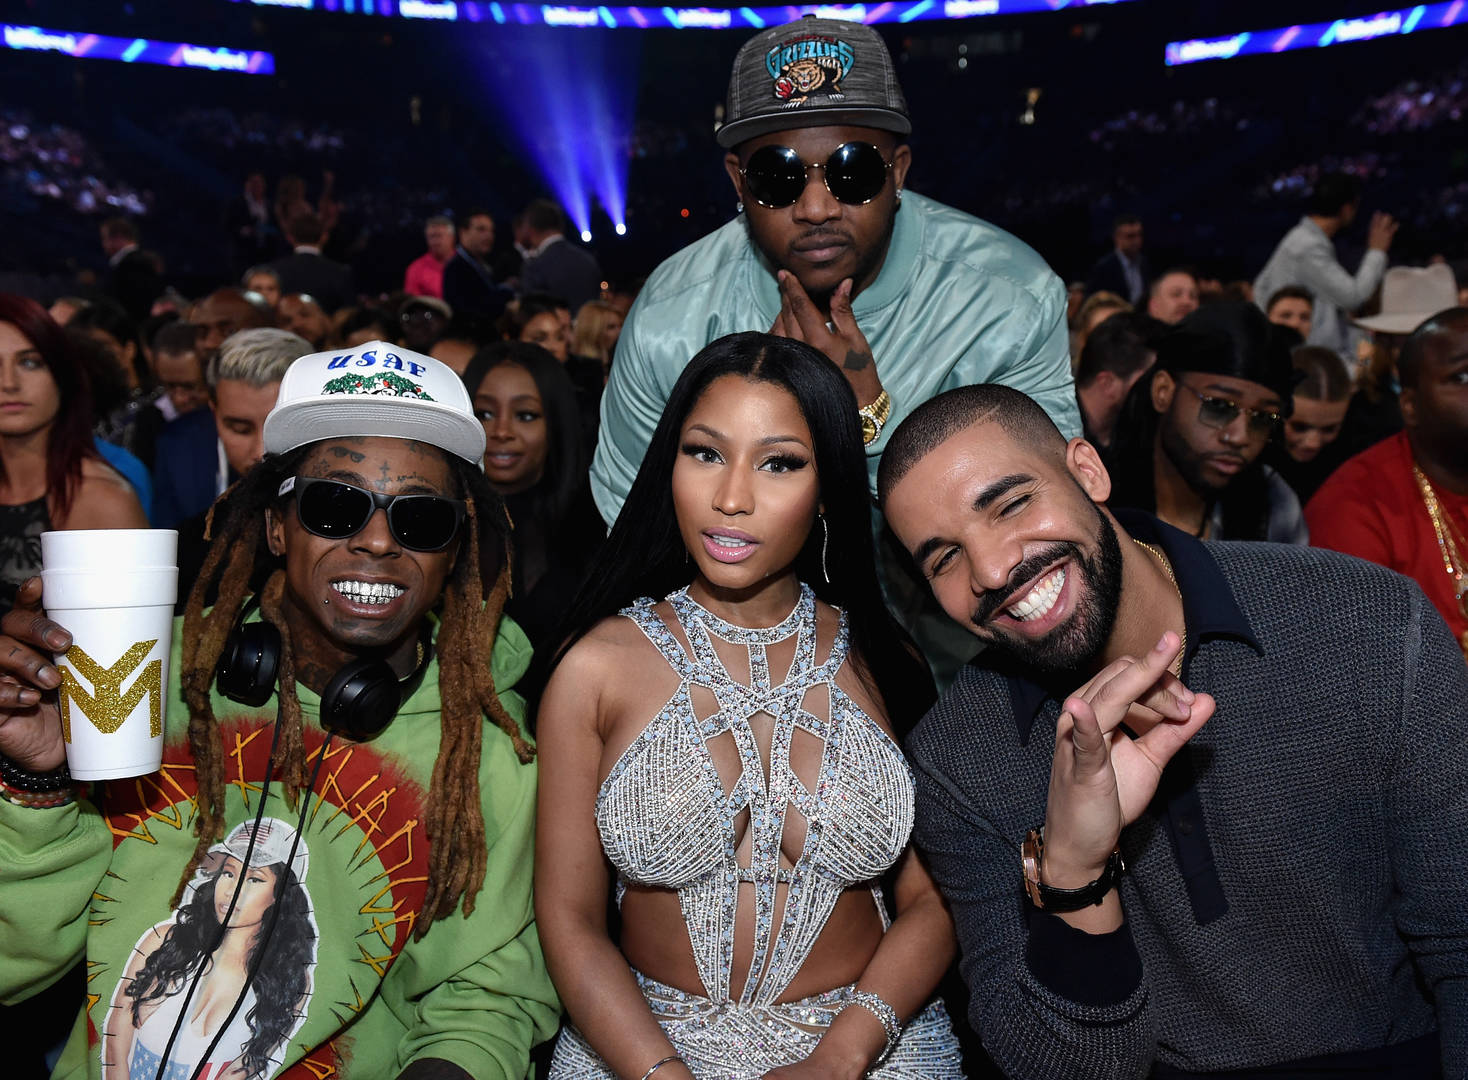 lil wayne drake nicki minaj and mack maine